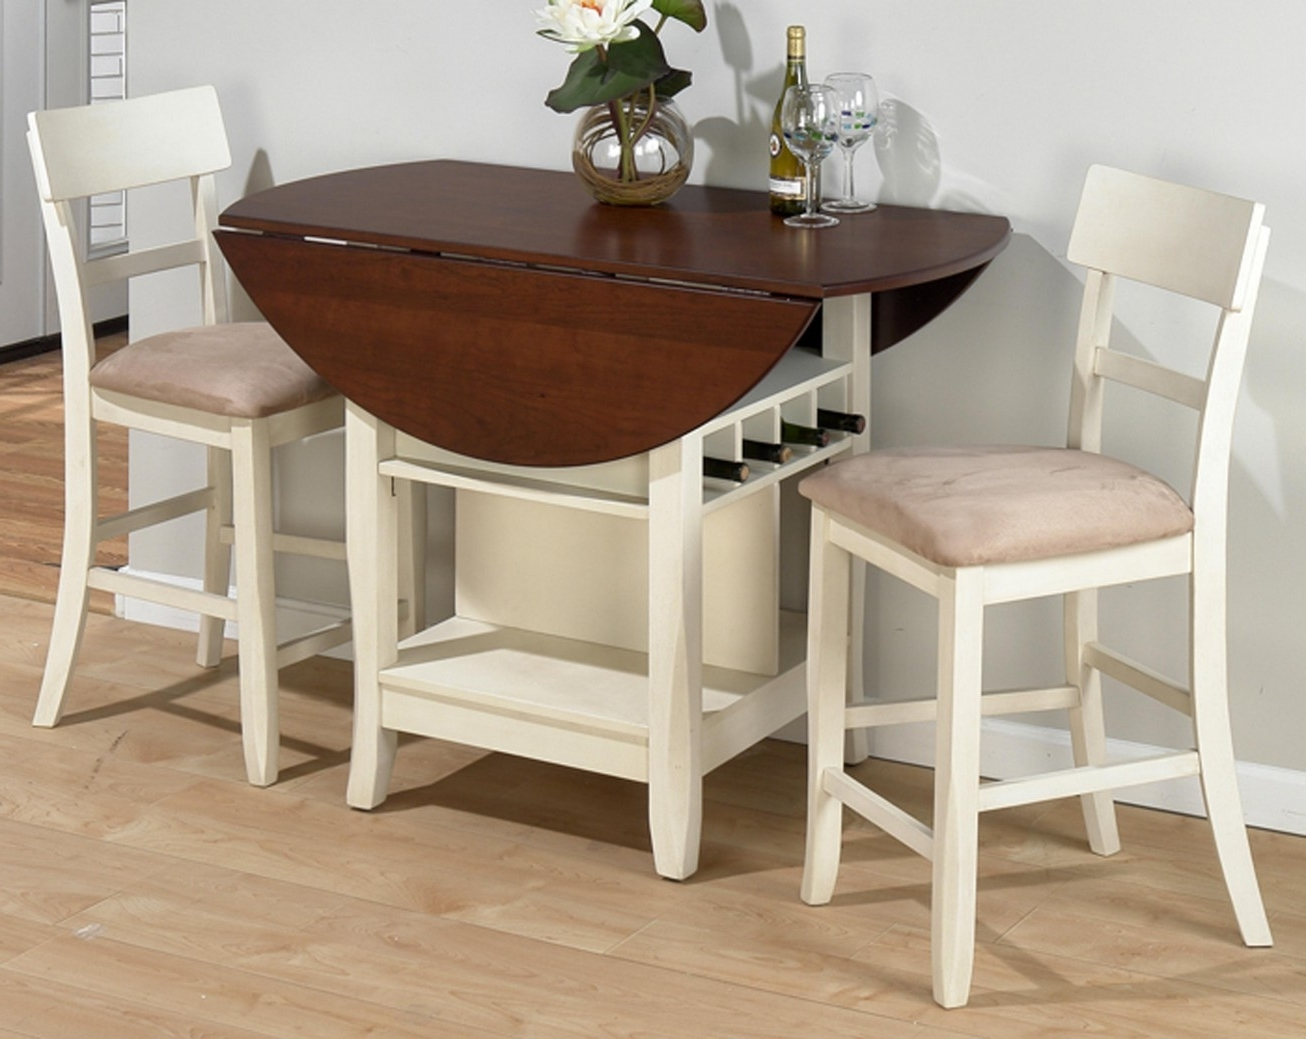 Small Dining Tables For 2 Regarding Most Recently Released Ikea Dining Table Set Small Eat In Kitchen Ideas 2 Seater For Sale (View 8 of 25)